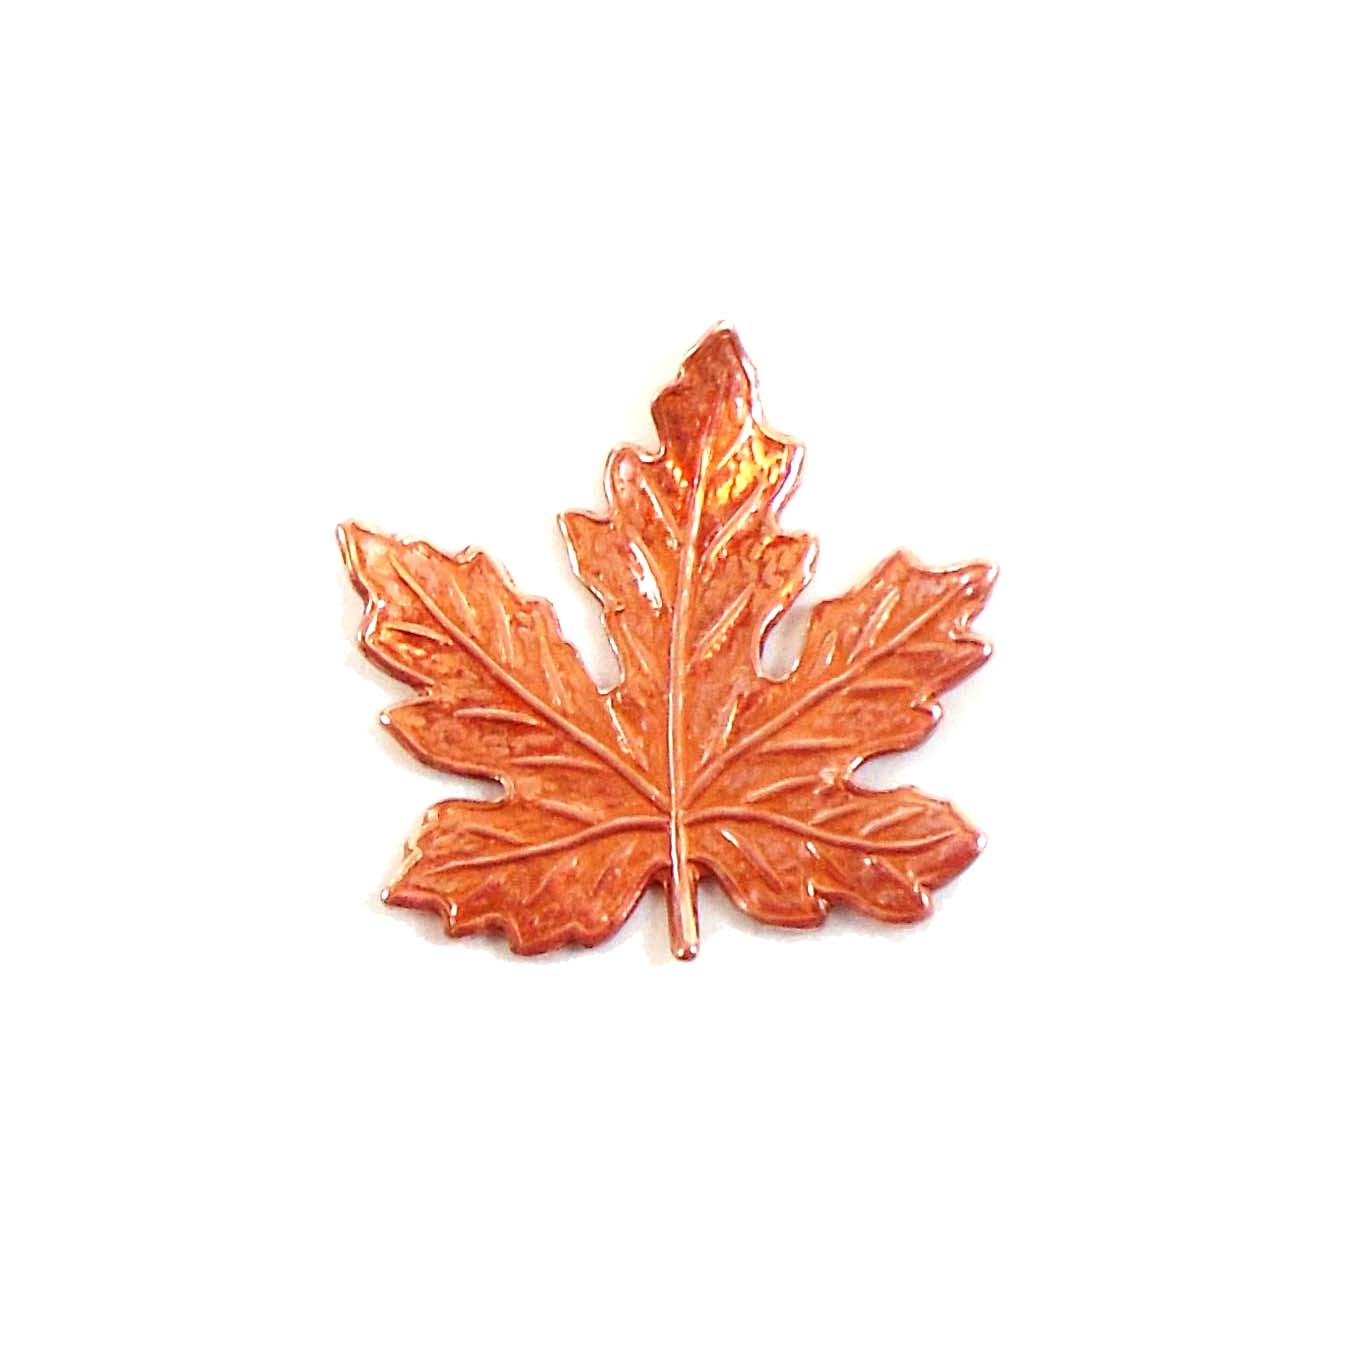 brass leaves, jewelry making,rosy copper, 02904, B'sue Boutiques, nickel free jewelry supplies, US made jewelry supplies, vintage jewellery supplies, altered art jewelry, maple leaves, antique copper, 21mm